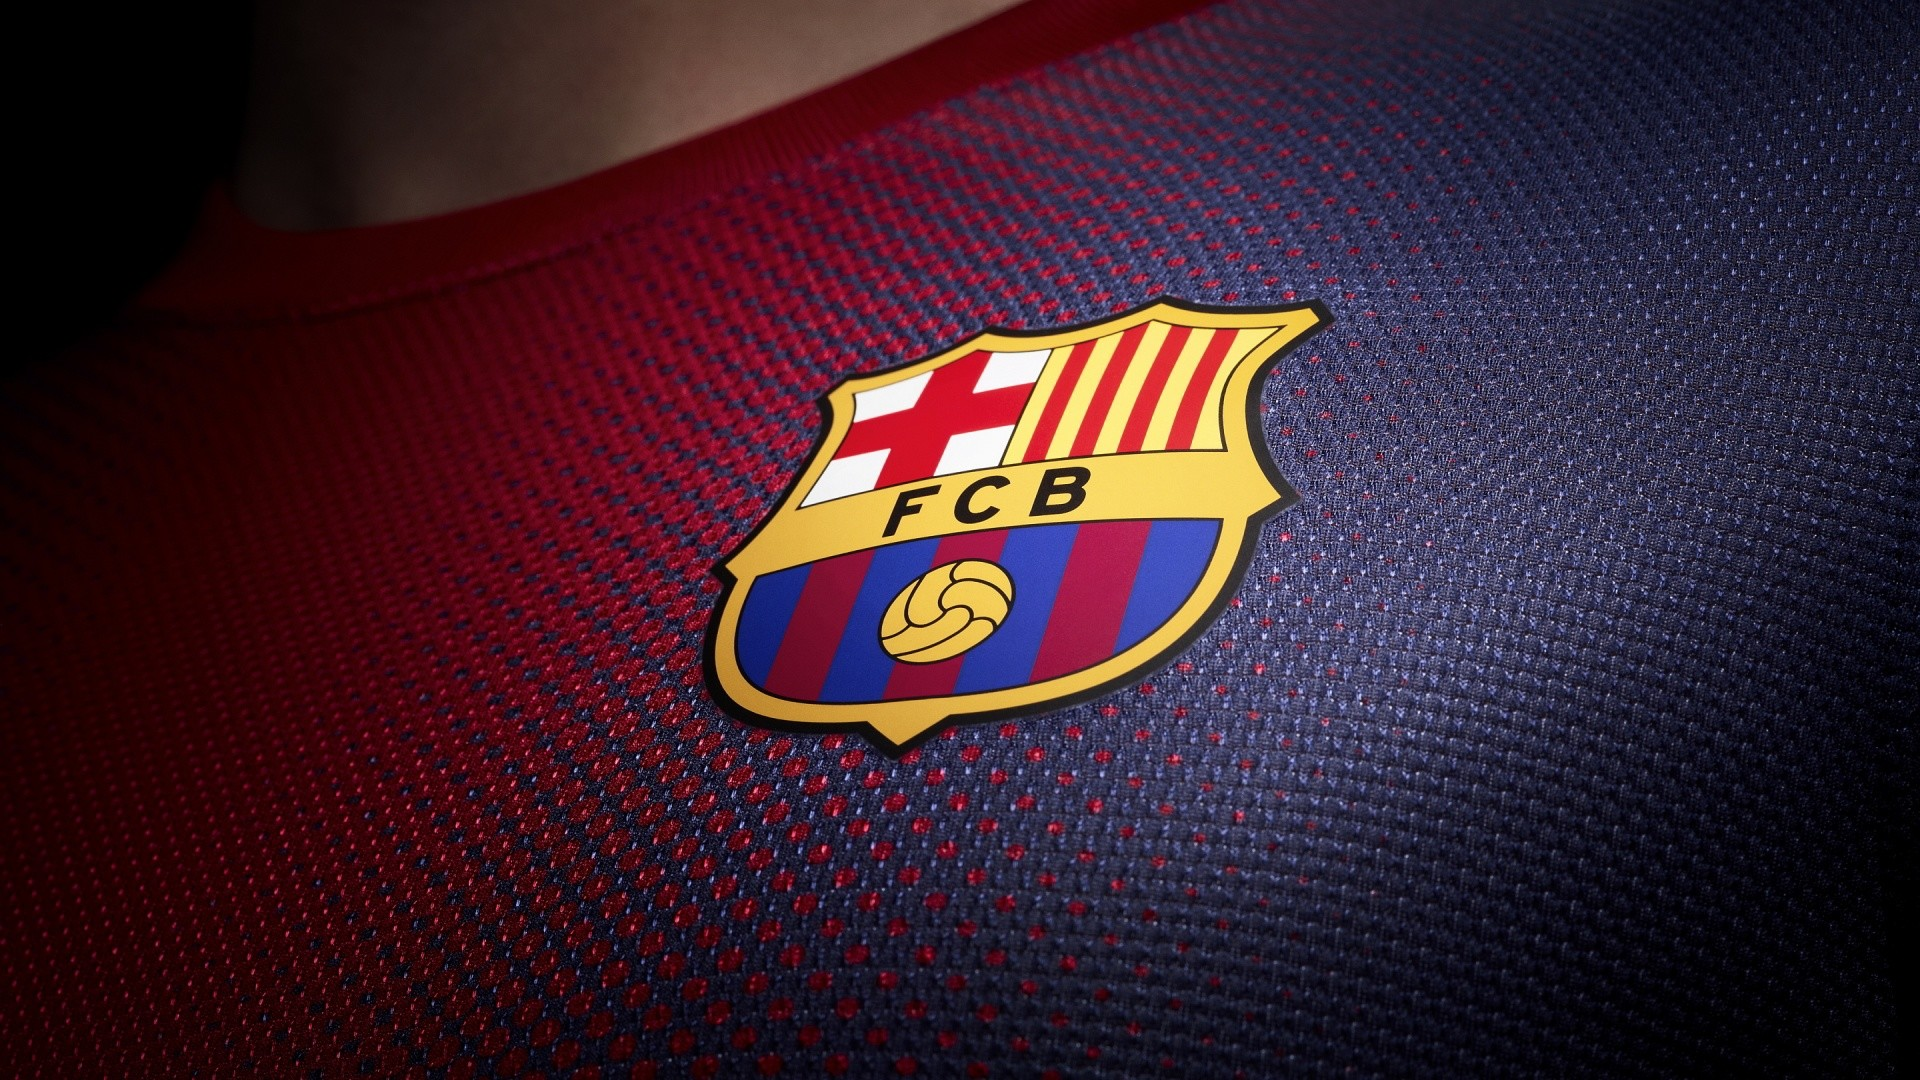 Description: The Wallpaper above is Fc barcelona logo Wallpaper in  Resolution 1920×1080. Choose your